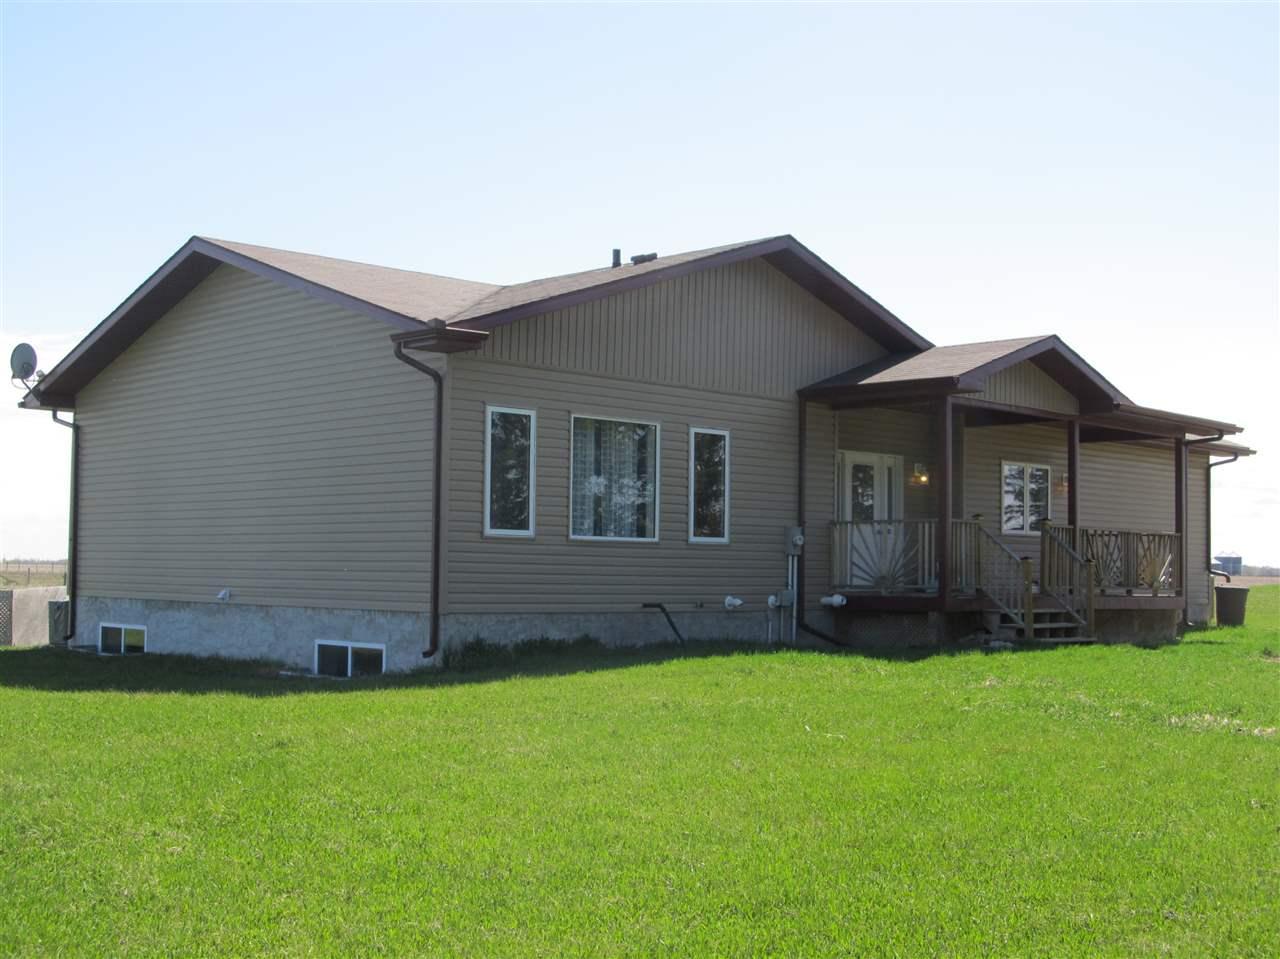 Photo 2: 58303 RR 263: Rural Westlock County House for sale : MLS(r) # E4052735